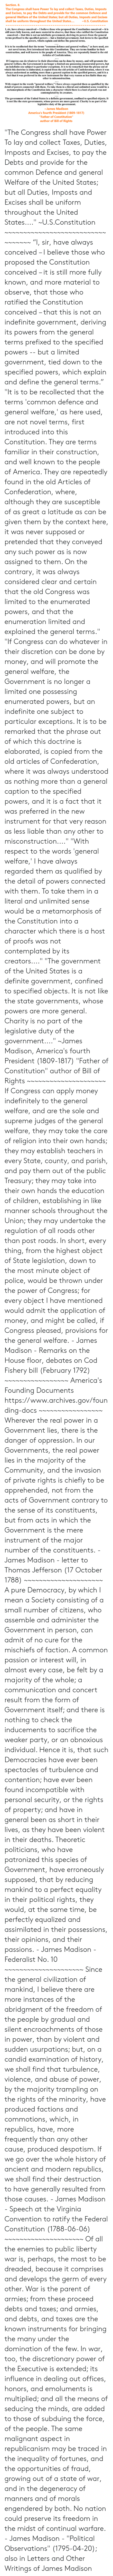 """despotism: Section. 8.  The Congress shall have Power To lay and collect Taxes, Duties, Imposts  and Excises, to pay the Debts and provide for the common Defence and  general Welfare of the United States; but all Duties, Imposts and Excises  shall be uniform throughout the United States...  U.S. Constitution  I, sir, have always conceivedI believe those who proposed the Constitution conceived it is  still more fully known, and more material to observe, that those who ratified the Constitution  conceivedthat this is not an indefinite government, deriving its powers from the general  terms prefixed to the specified powers- but a limited government, tied down to the specified  powers, which explain and define the general terms.  It is to be recollected that the terms """"common defence and general welfare,"""" as here used, are  not novel terms, first introduced into this Constitution. They are terms familiar in their  construction, and well known to the people of America. They are repeatedly found in the old  Articles of Confederation  If Congress can do whatever in their discretion can be done by money, and will promote the  general welfare, the Government is no longer a limited one possessing enumerated powers, but  an indefinite one subject to particular exceptions. It is to be remarked that the phrase out of  which this doctrine is elaborated, is copied from the old articles of Confederation, where it was  always understood as nothing more than a general caption to the specified powers, and it is a  fact that it was preferred in the new instrument for that very reason as less liable than any  other to misconstruction.  With respect to the words """"general welfare,"""" I have always regarded them as qualified by the  detail of powers connected with them. To take them in a literal and unlimited sense would bea  metamorphosis of the Constitution into a character which there is a host of proofs was not  contemplated by its creators.  The government of the United States is a defi"""